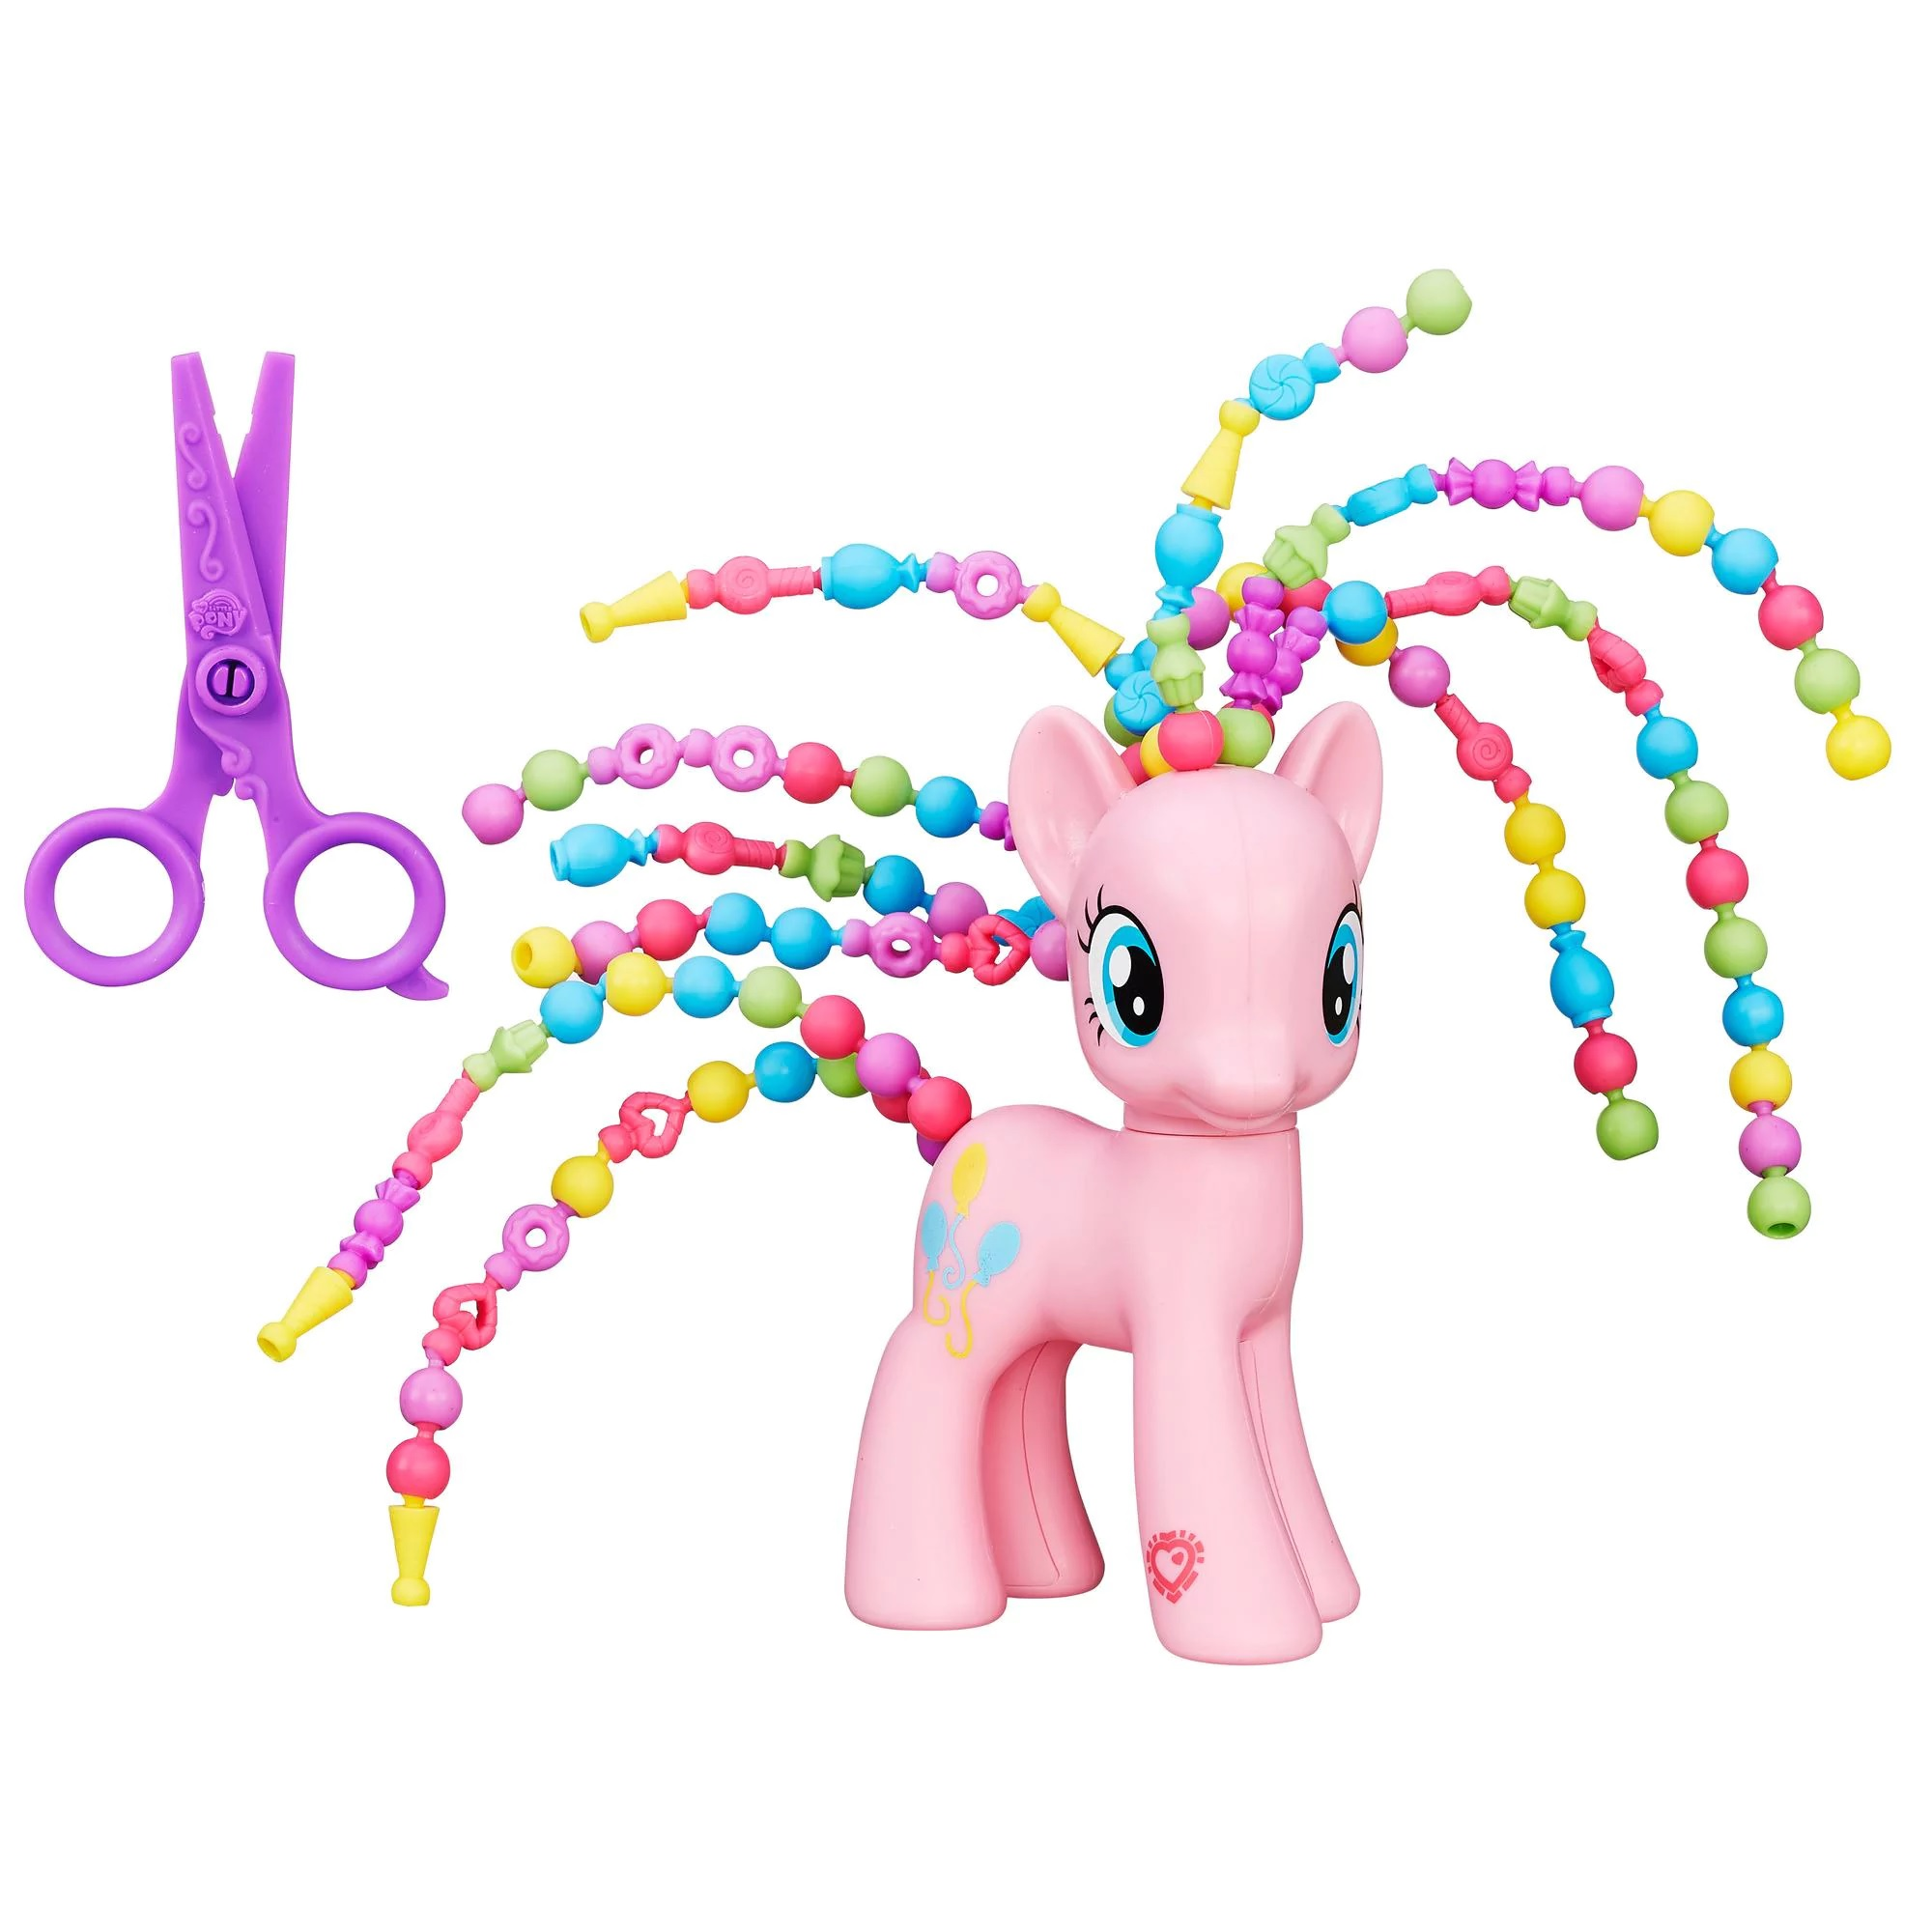 My Little Pony Equestria Hair Play Pinkie Pie Kr 99 Pa Lager Til Omgaende Levering